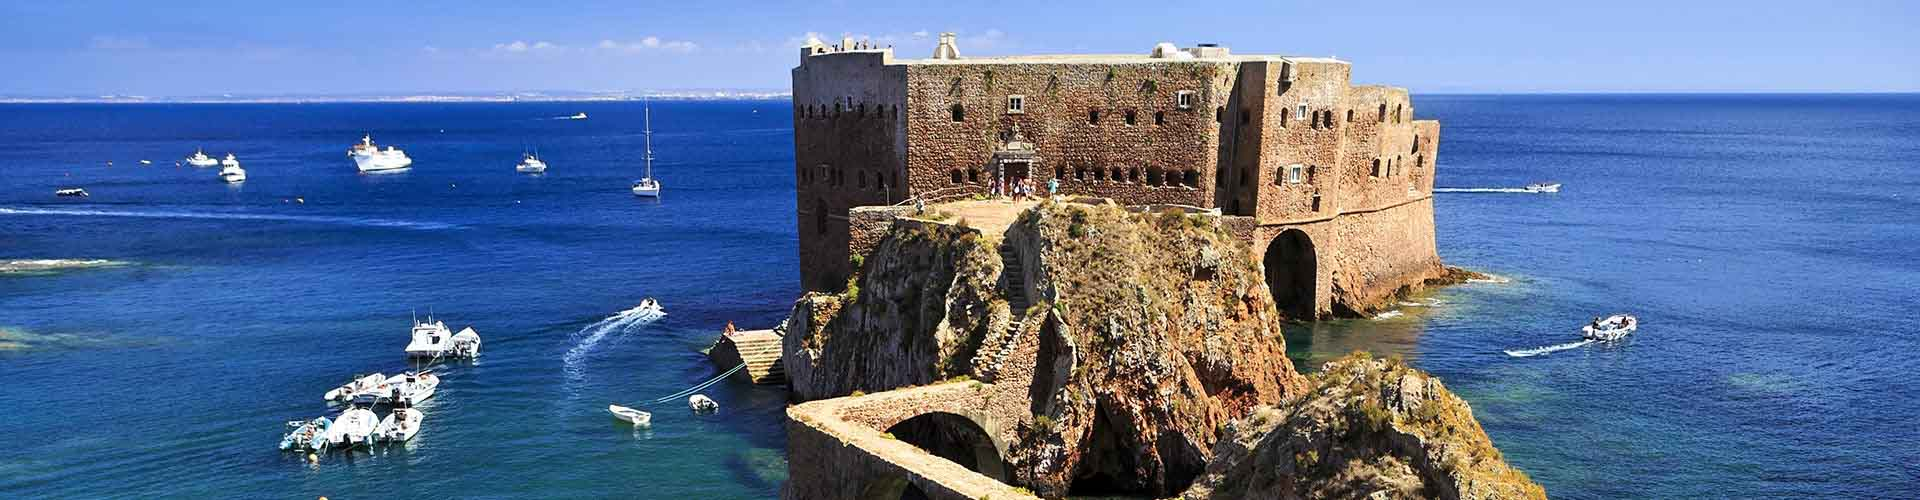 Peniche – Hostels in Peniche. Maps for Peniche, Photos and Reviews for each hostel in Peniche.